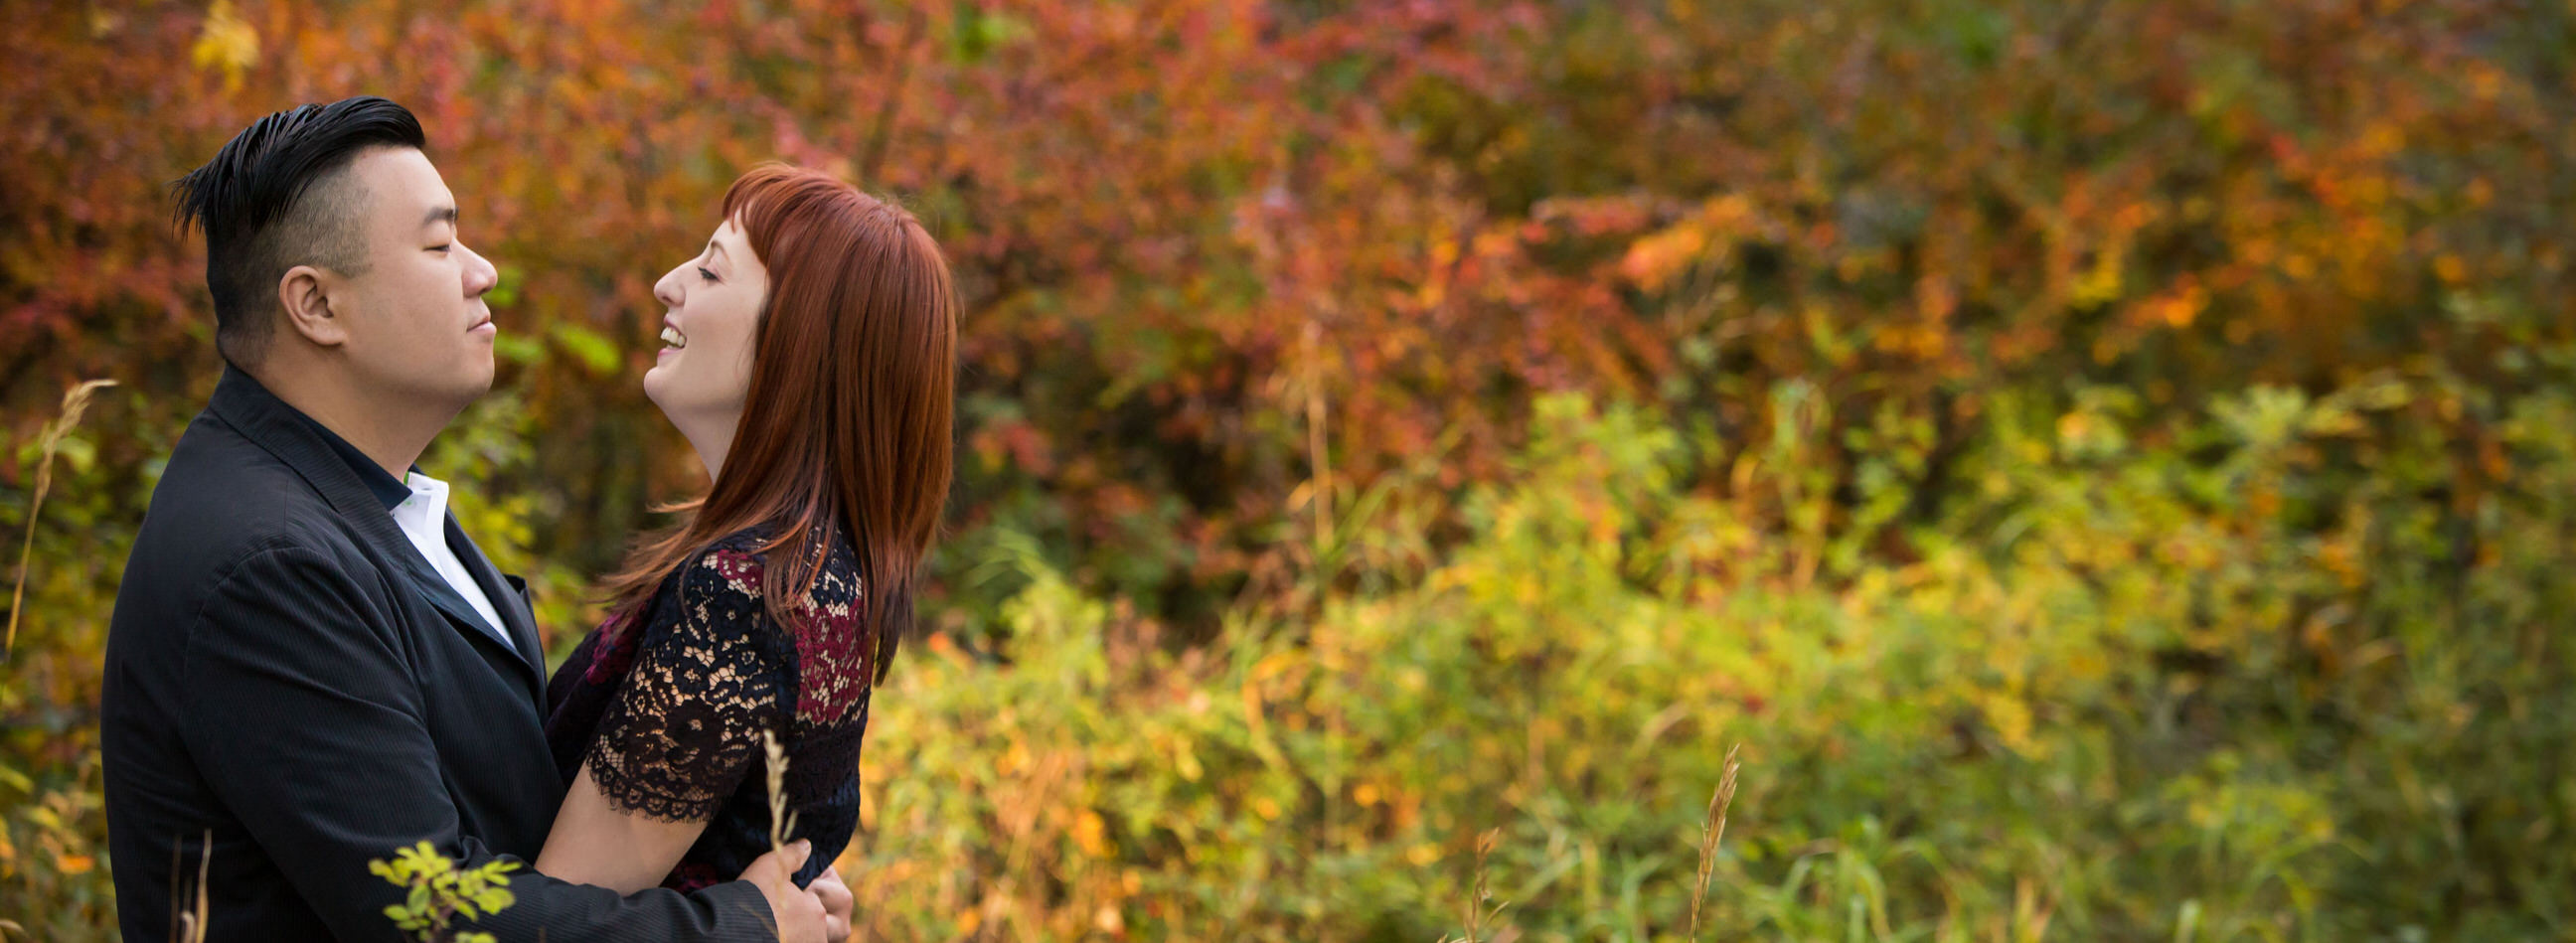 Brittany testimonial, engagement photo in autumn colors